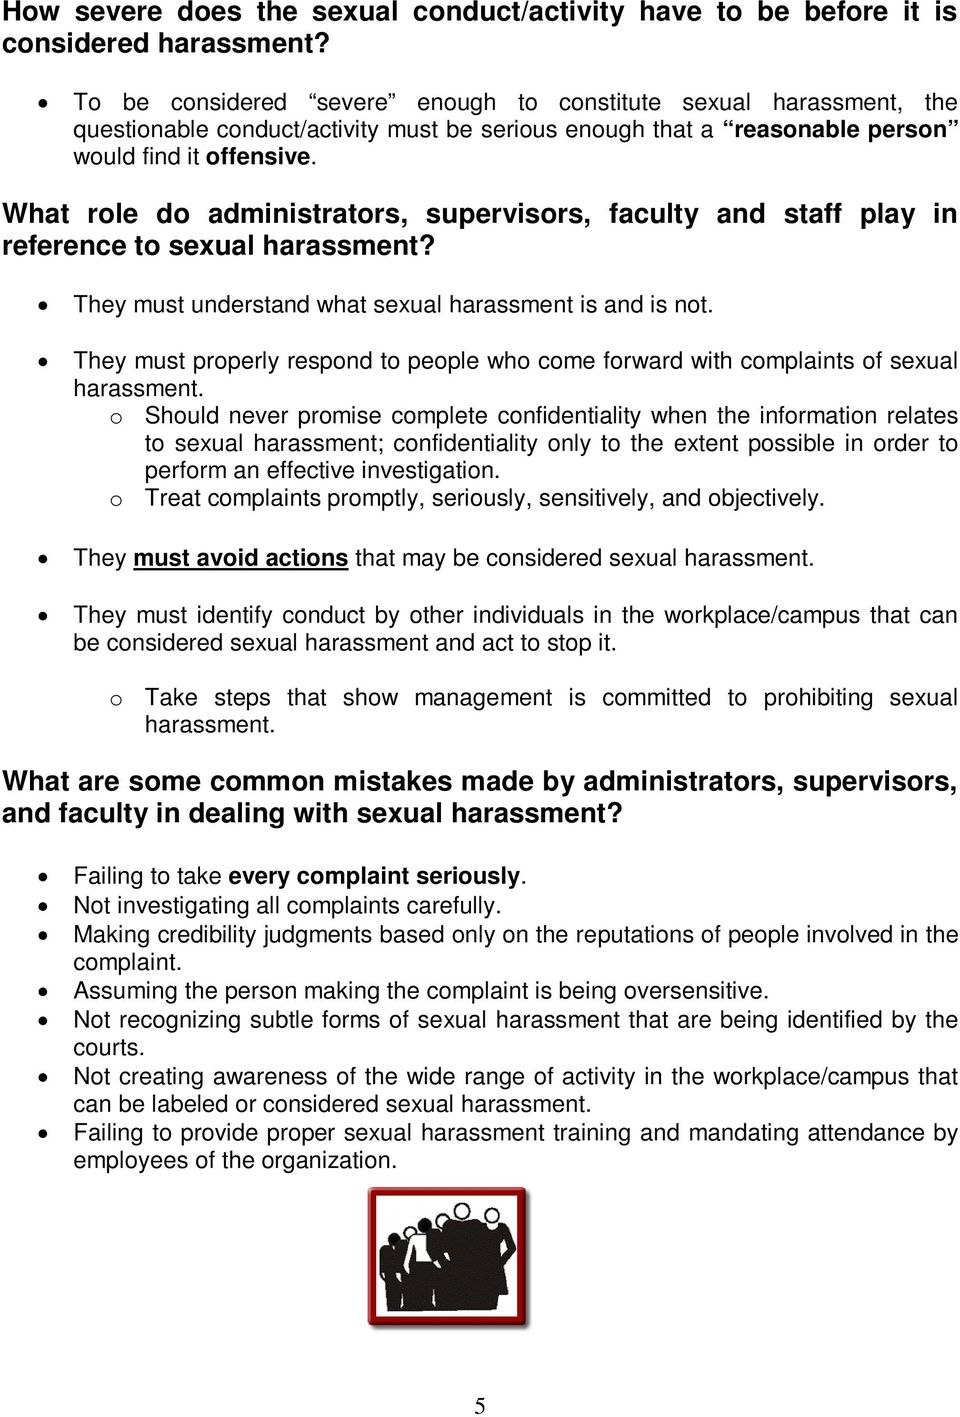 What role do administrators, supervisors, faculty and staff play in reference to sexual harassment? They must understand what sexual harassment is and is not.